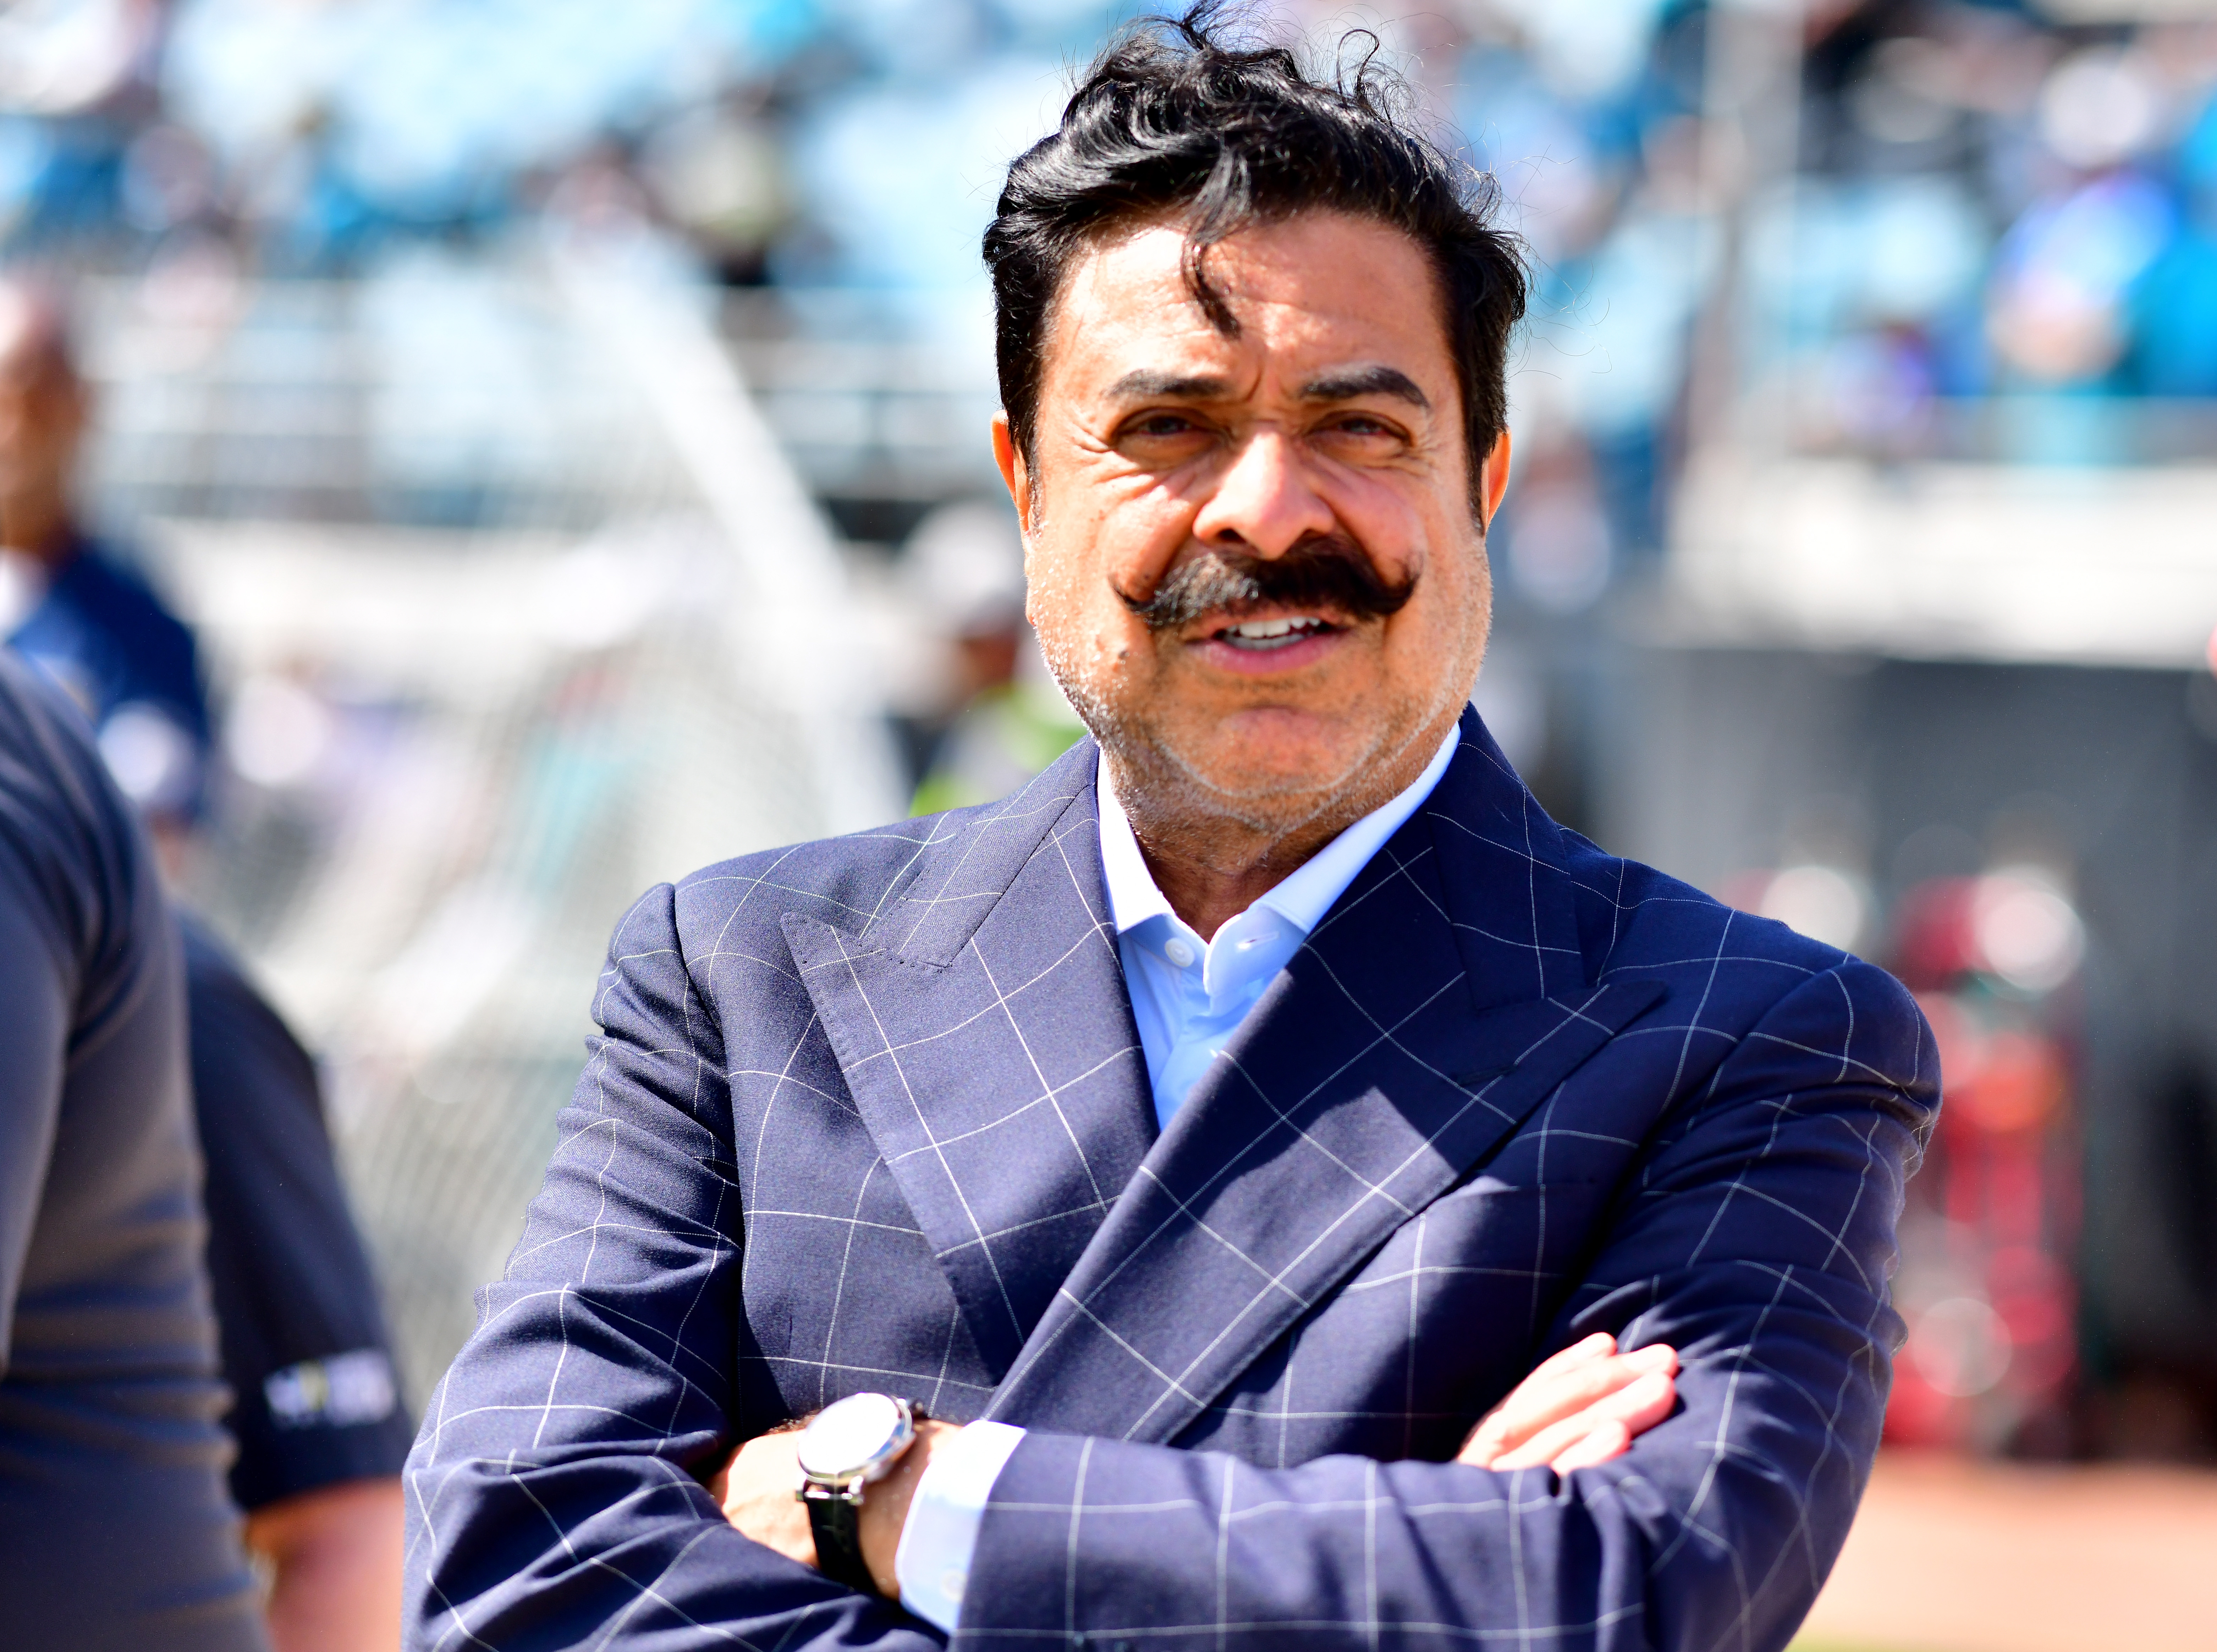 Jaguars Owner Shahid Khan's $200 Million Superyacht Can Host 270 Guests for a Party